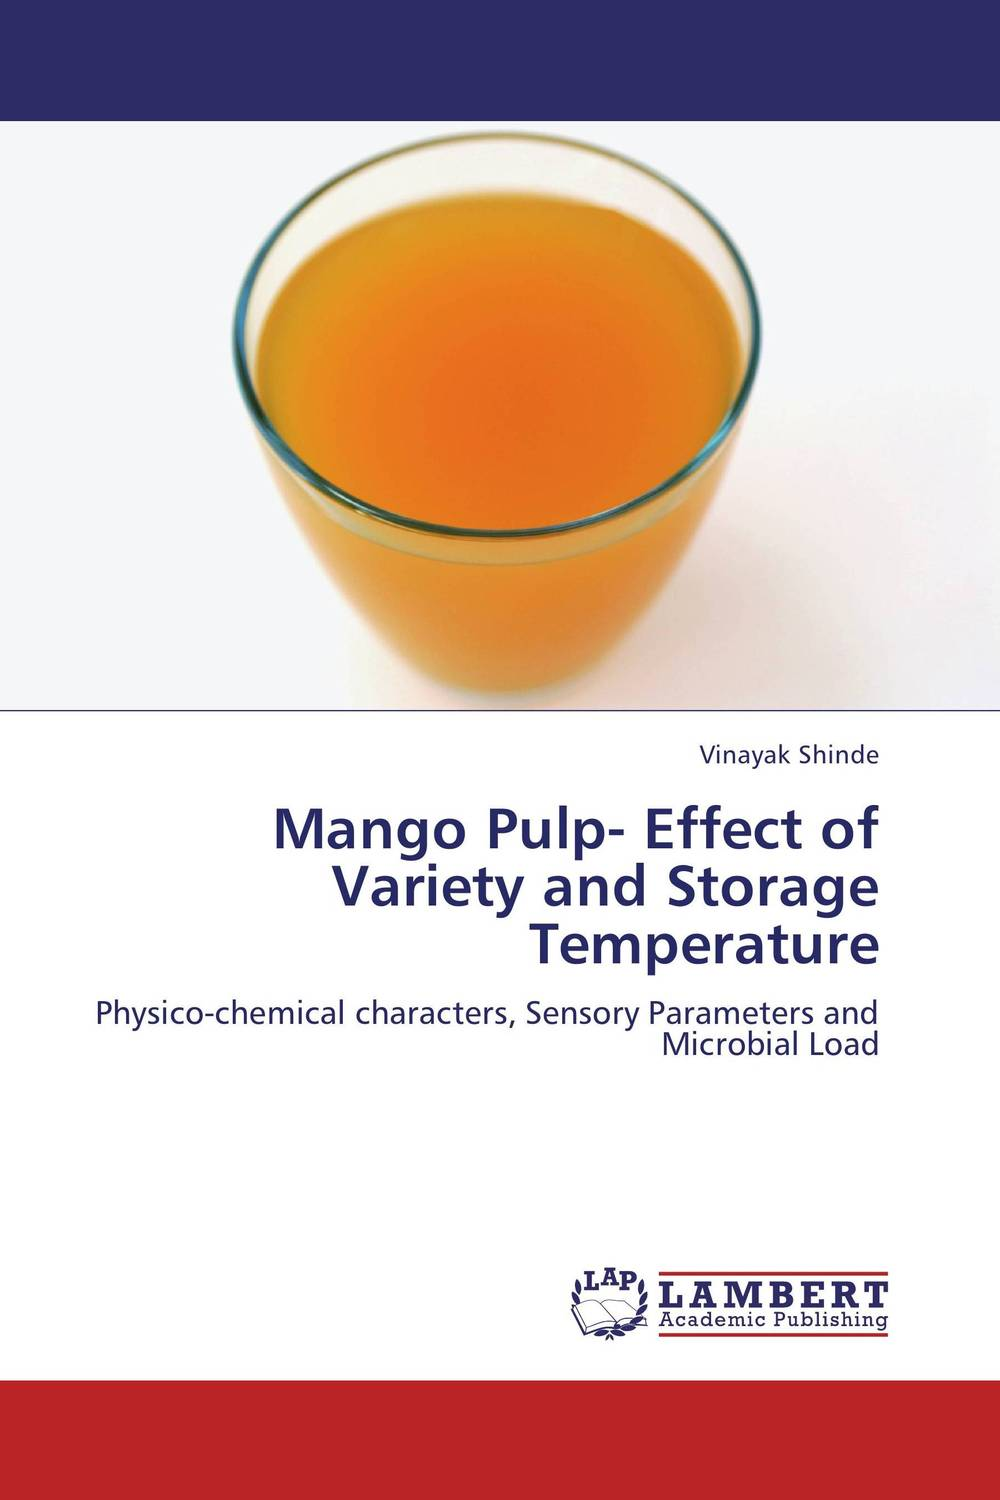 Mango Pulp- Effect of Variety and Storage Temperature mango pulp effect of variety and storage temperature